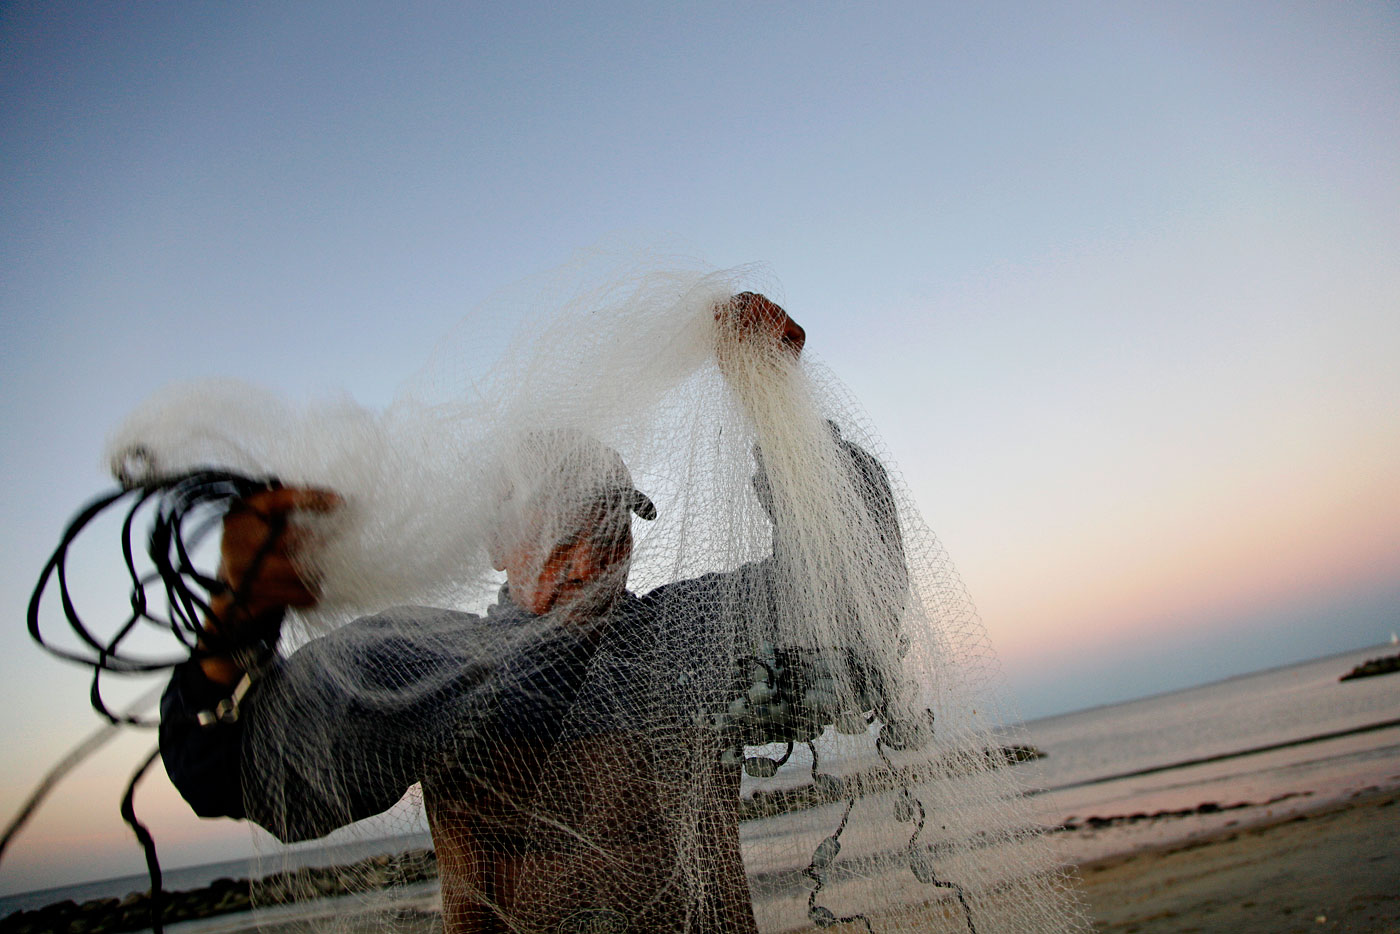 Andy Muyano stretches the cast net to release the mullet he caught while fishing in Ocean View.